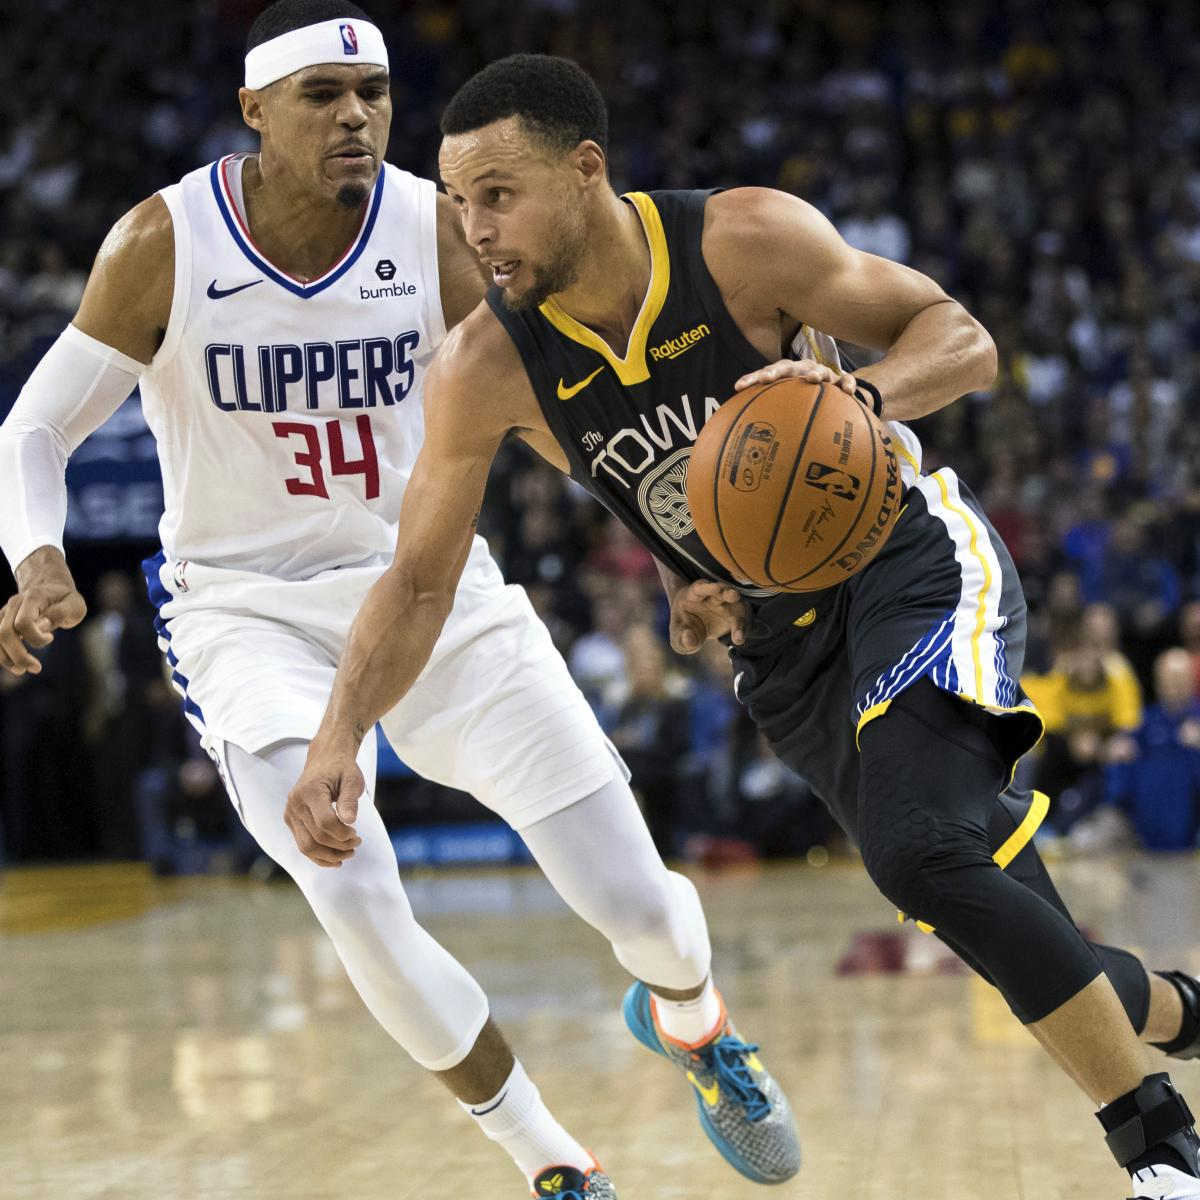 Bleacher Report Nba Staff S 2019 Playoff Predictions: NBA Playoff Schedule 2019: 1st Round TV Info And